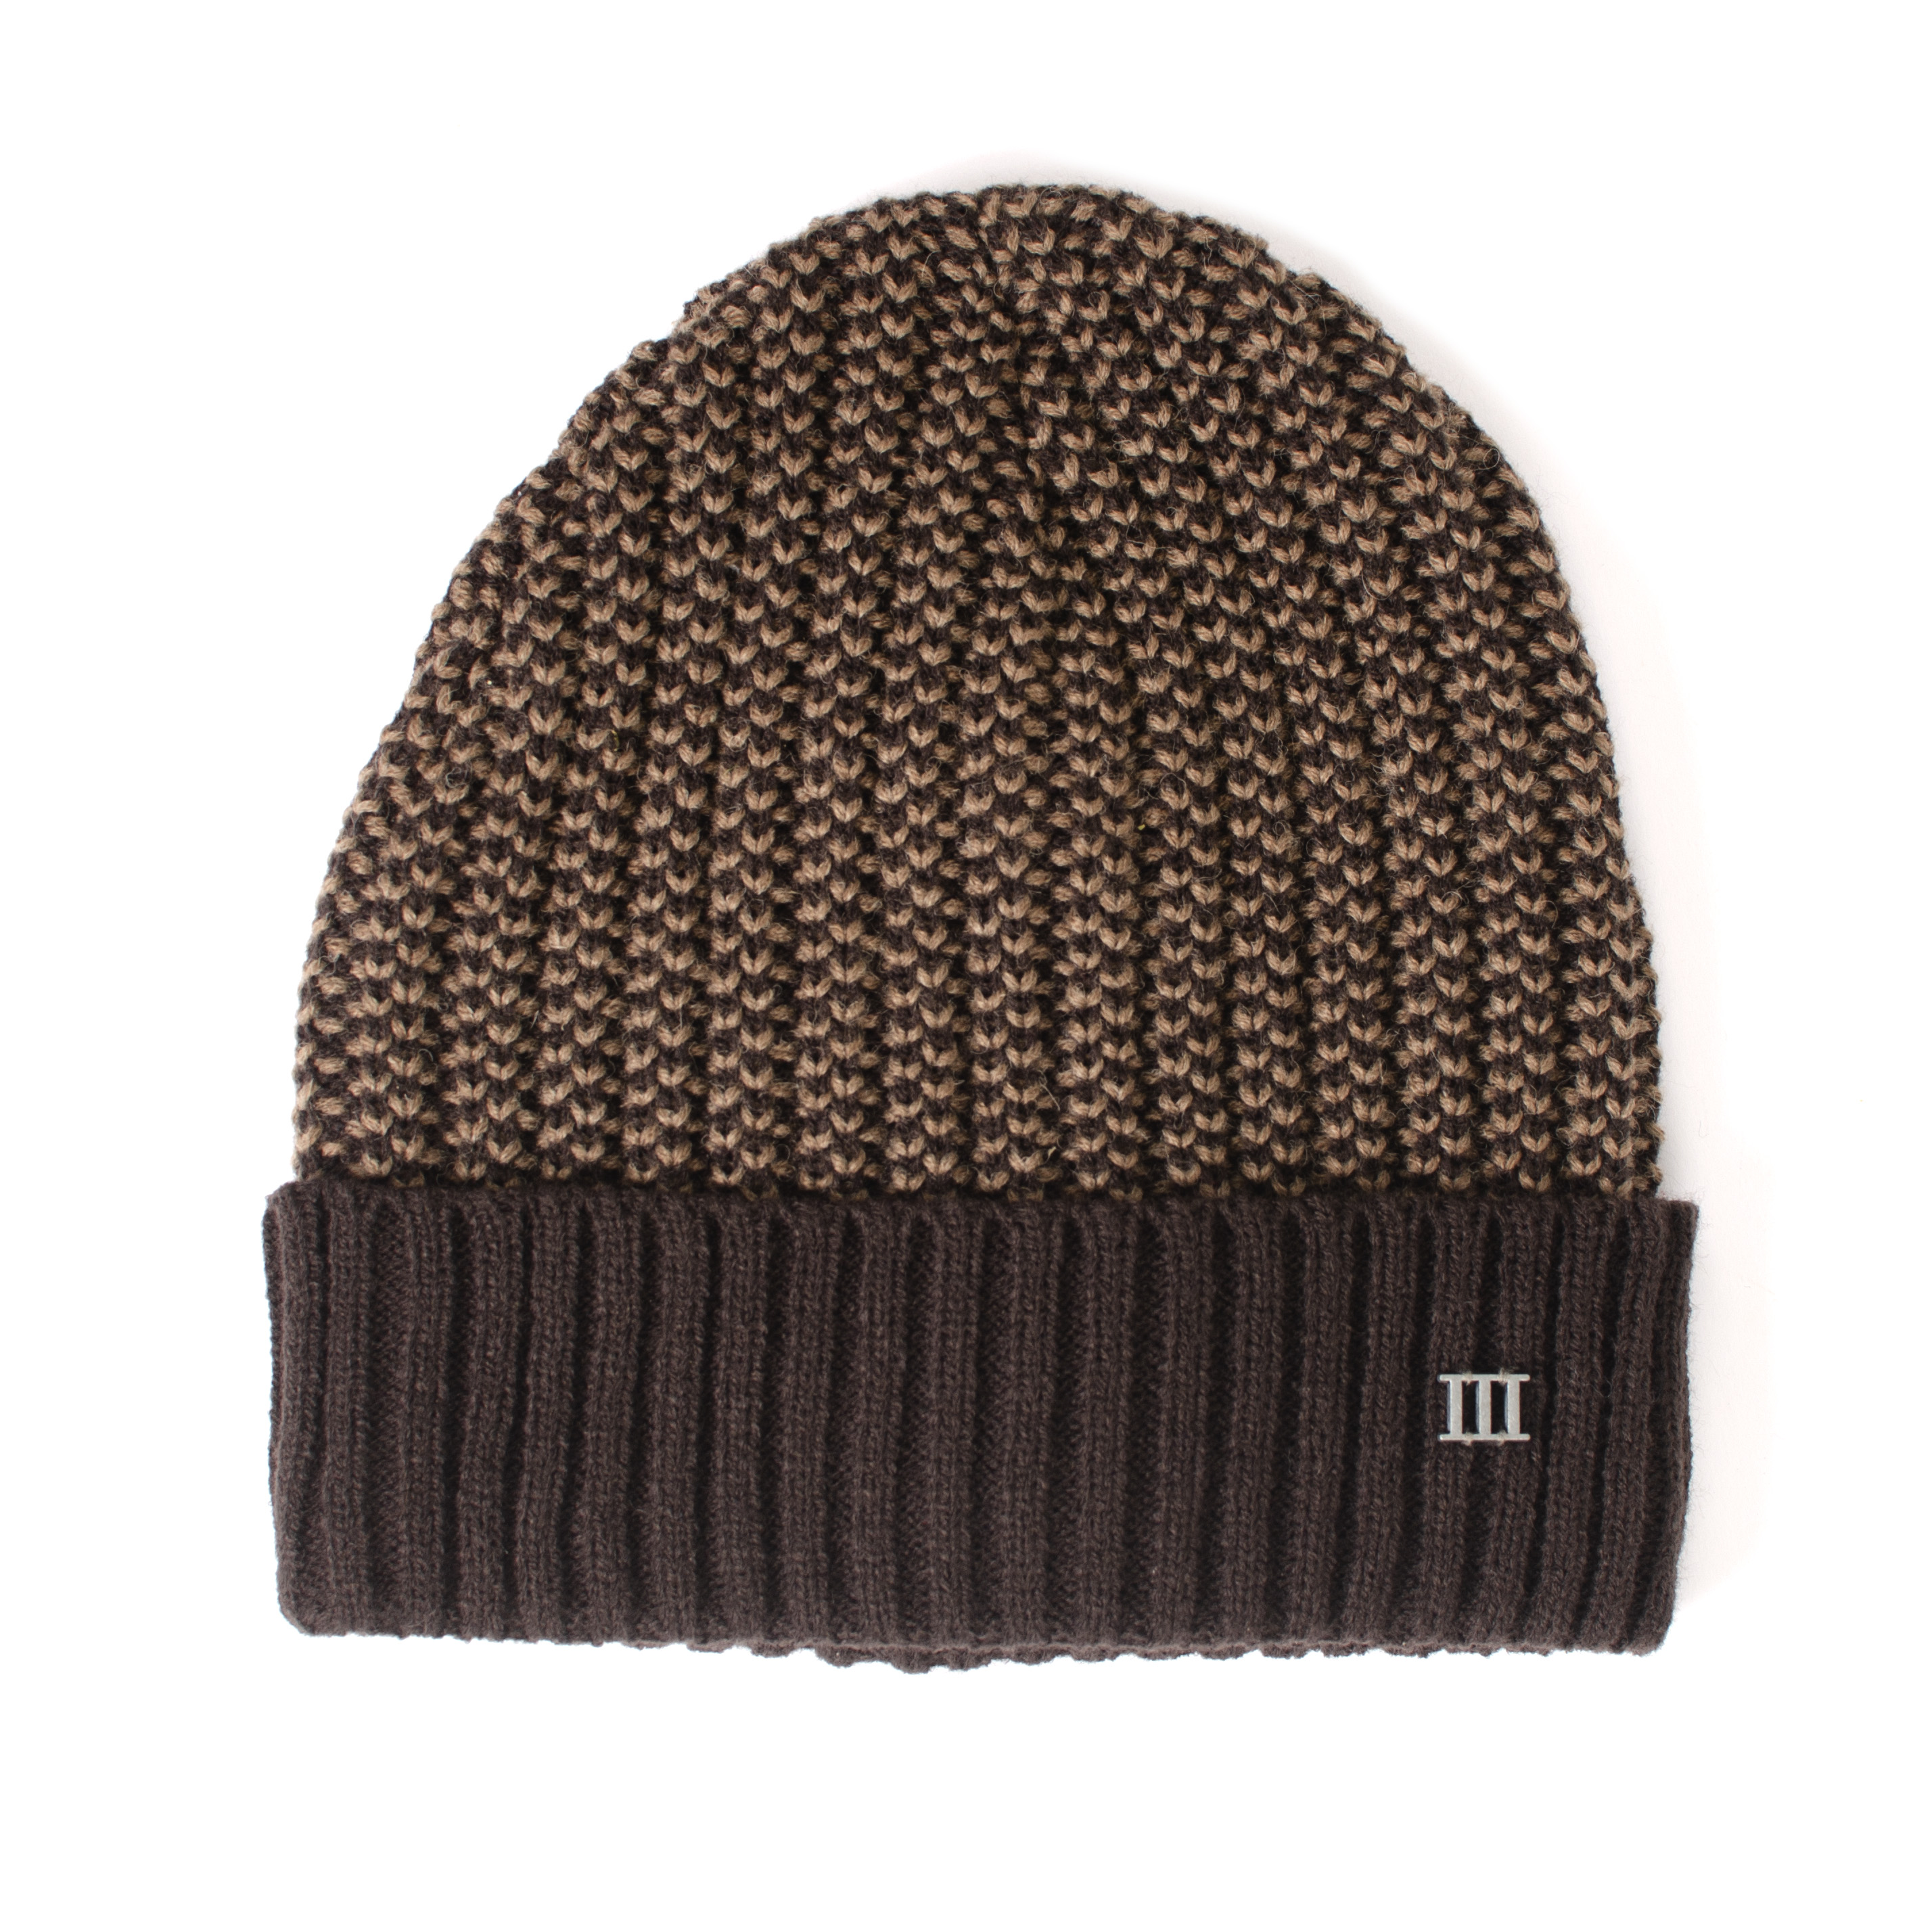 Jaeson | Chunky knit beanie with cuff brown